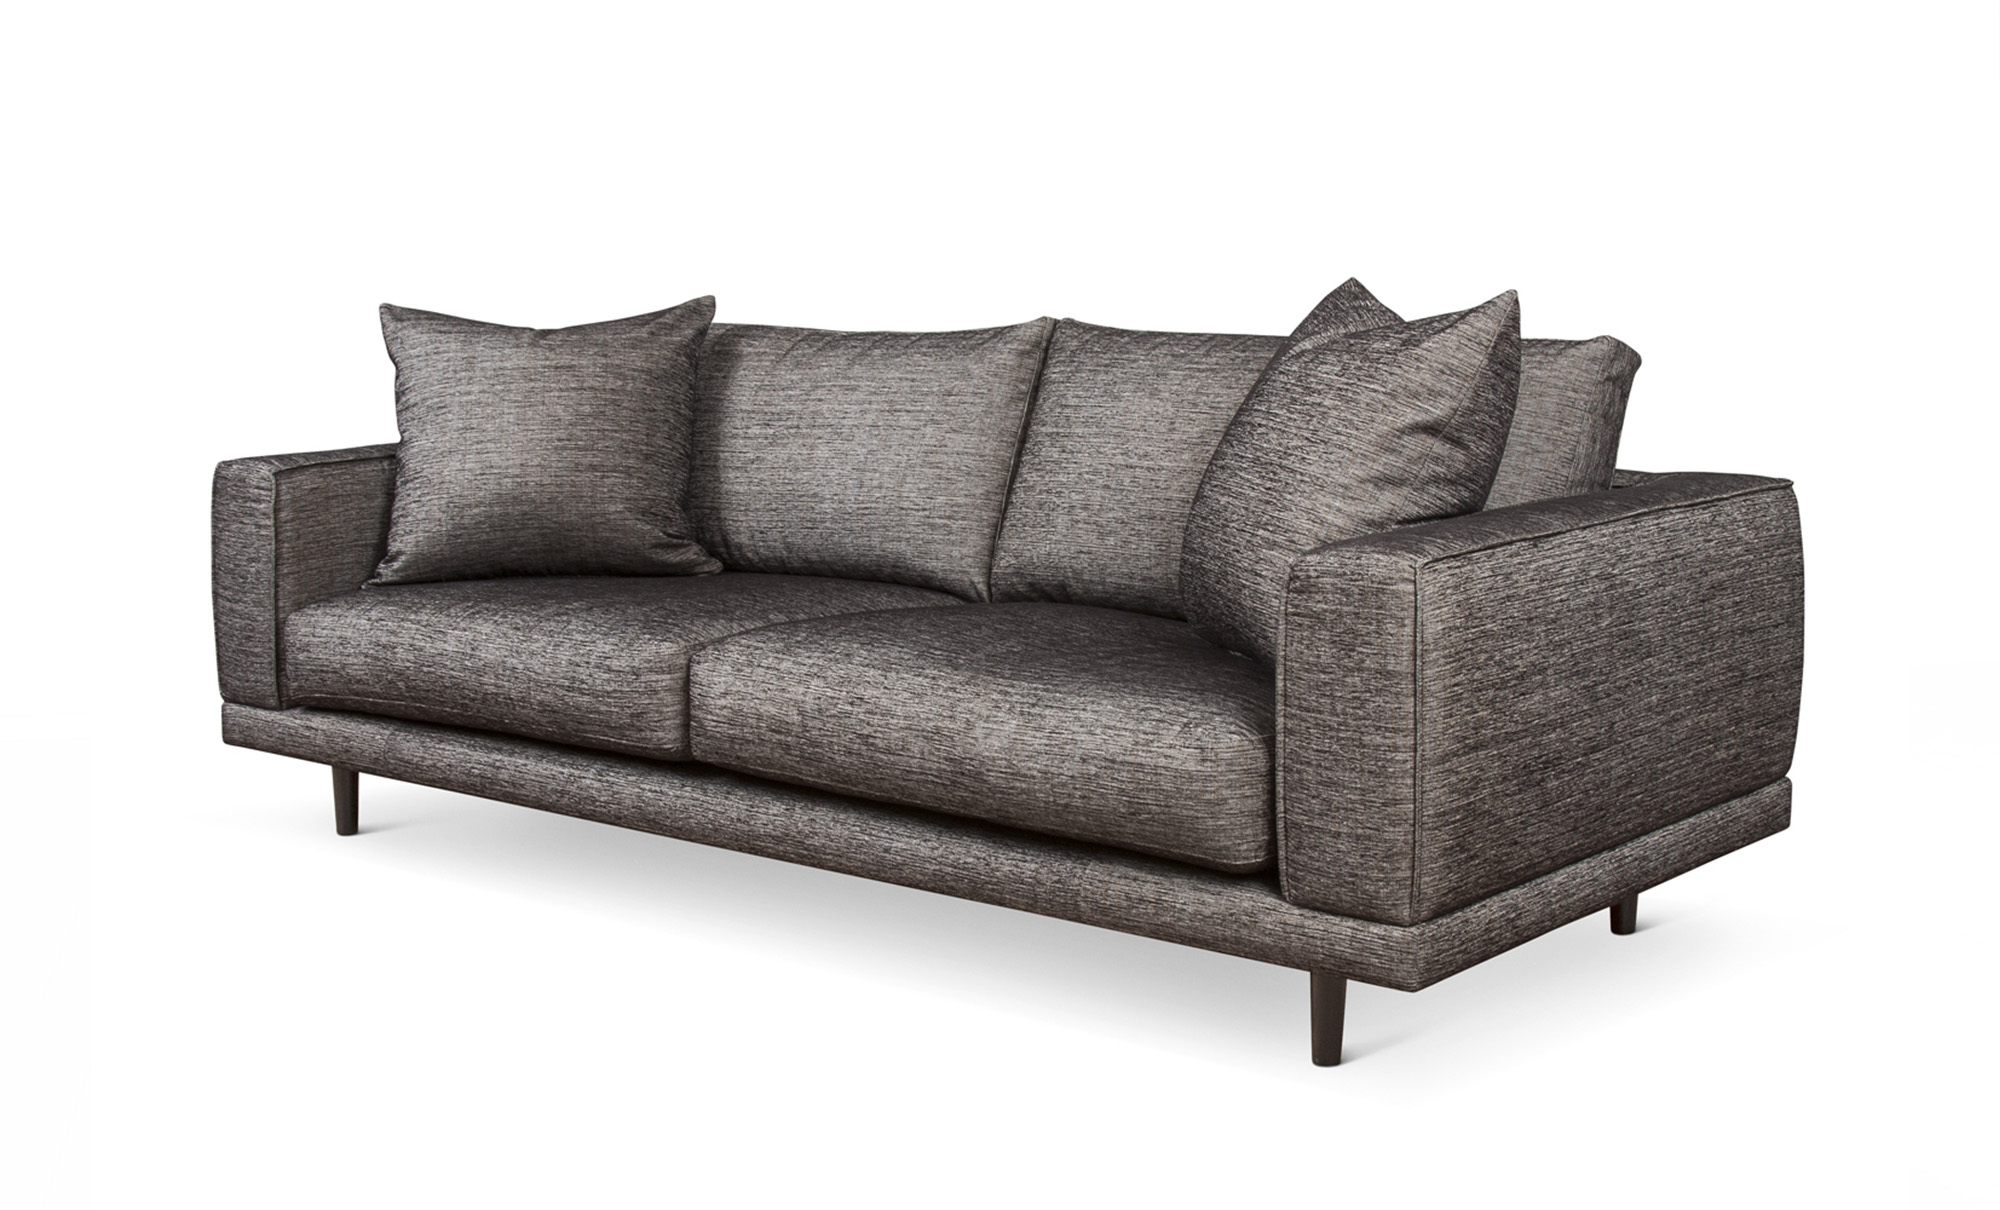 interio sofa charlie how much does a bernhardt leather cost fanuli furniture